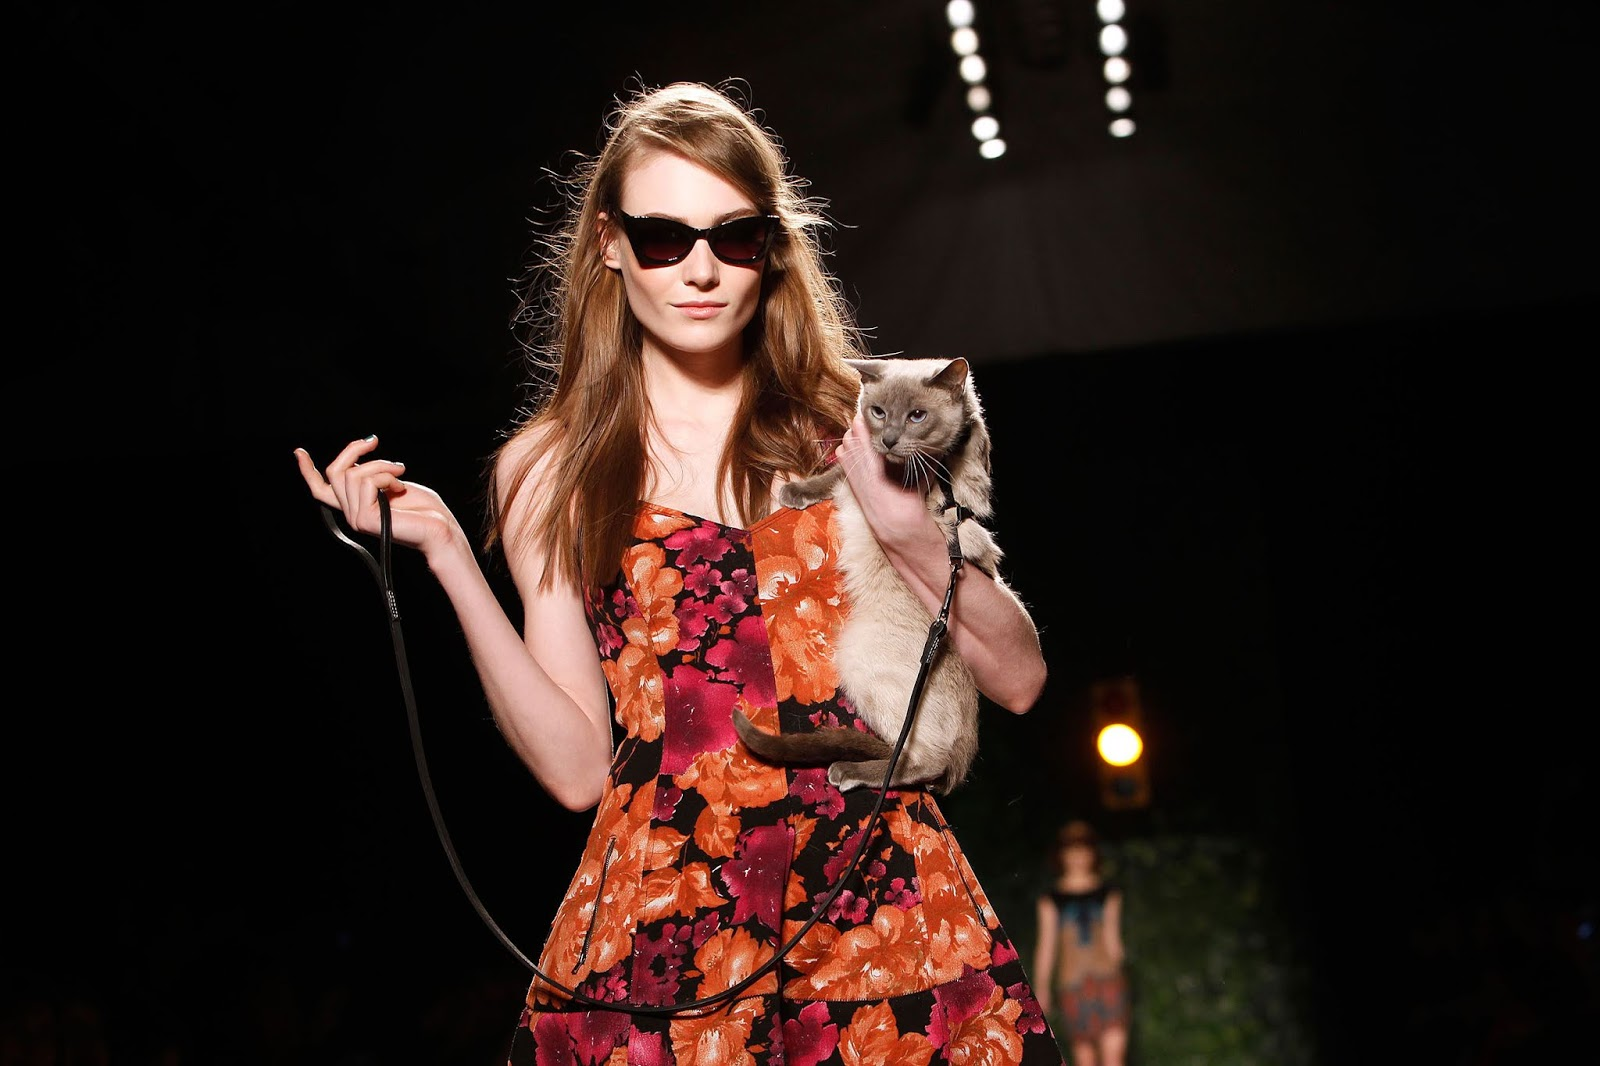 The Short Answer Would Seem To Be None Runway Models Don T Design Clothes Nor Do They Hold Rights Brands Or Show Itself